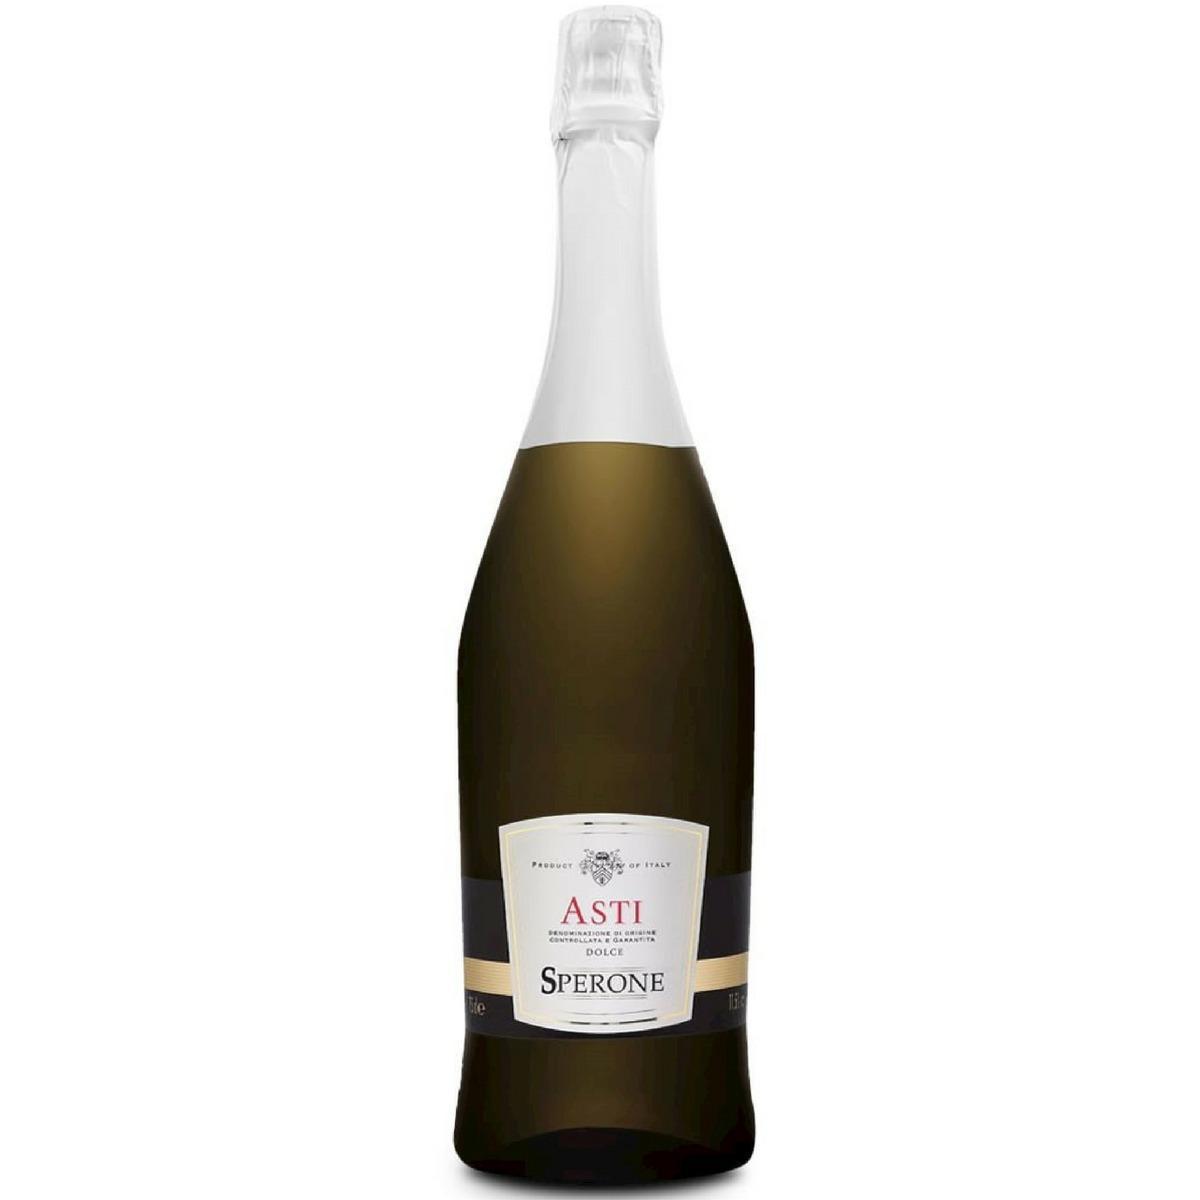 Asti Sperone Moscatel 750ml